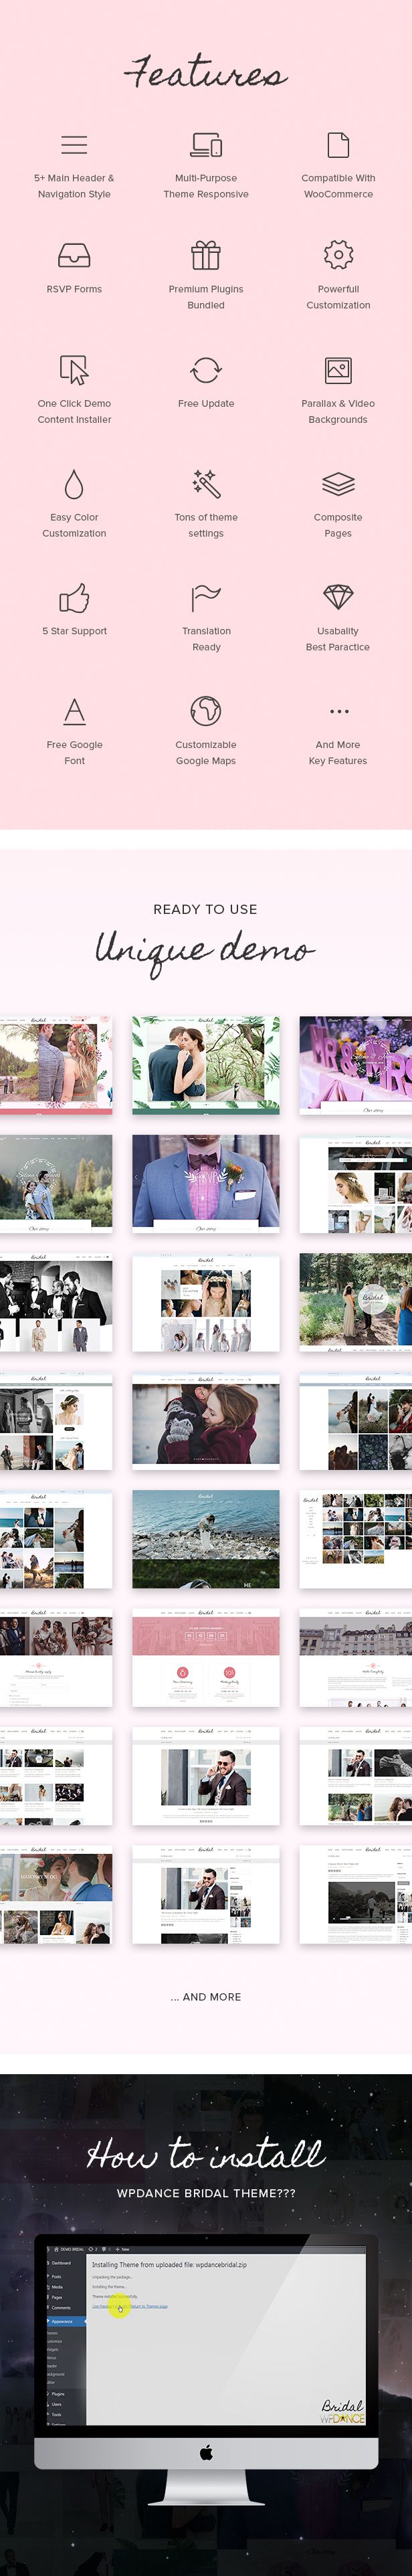 Bridal - Wedding WordPress Theme + RSVP, Event Planner, Ceremony, Gallery, Shop